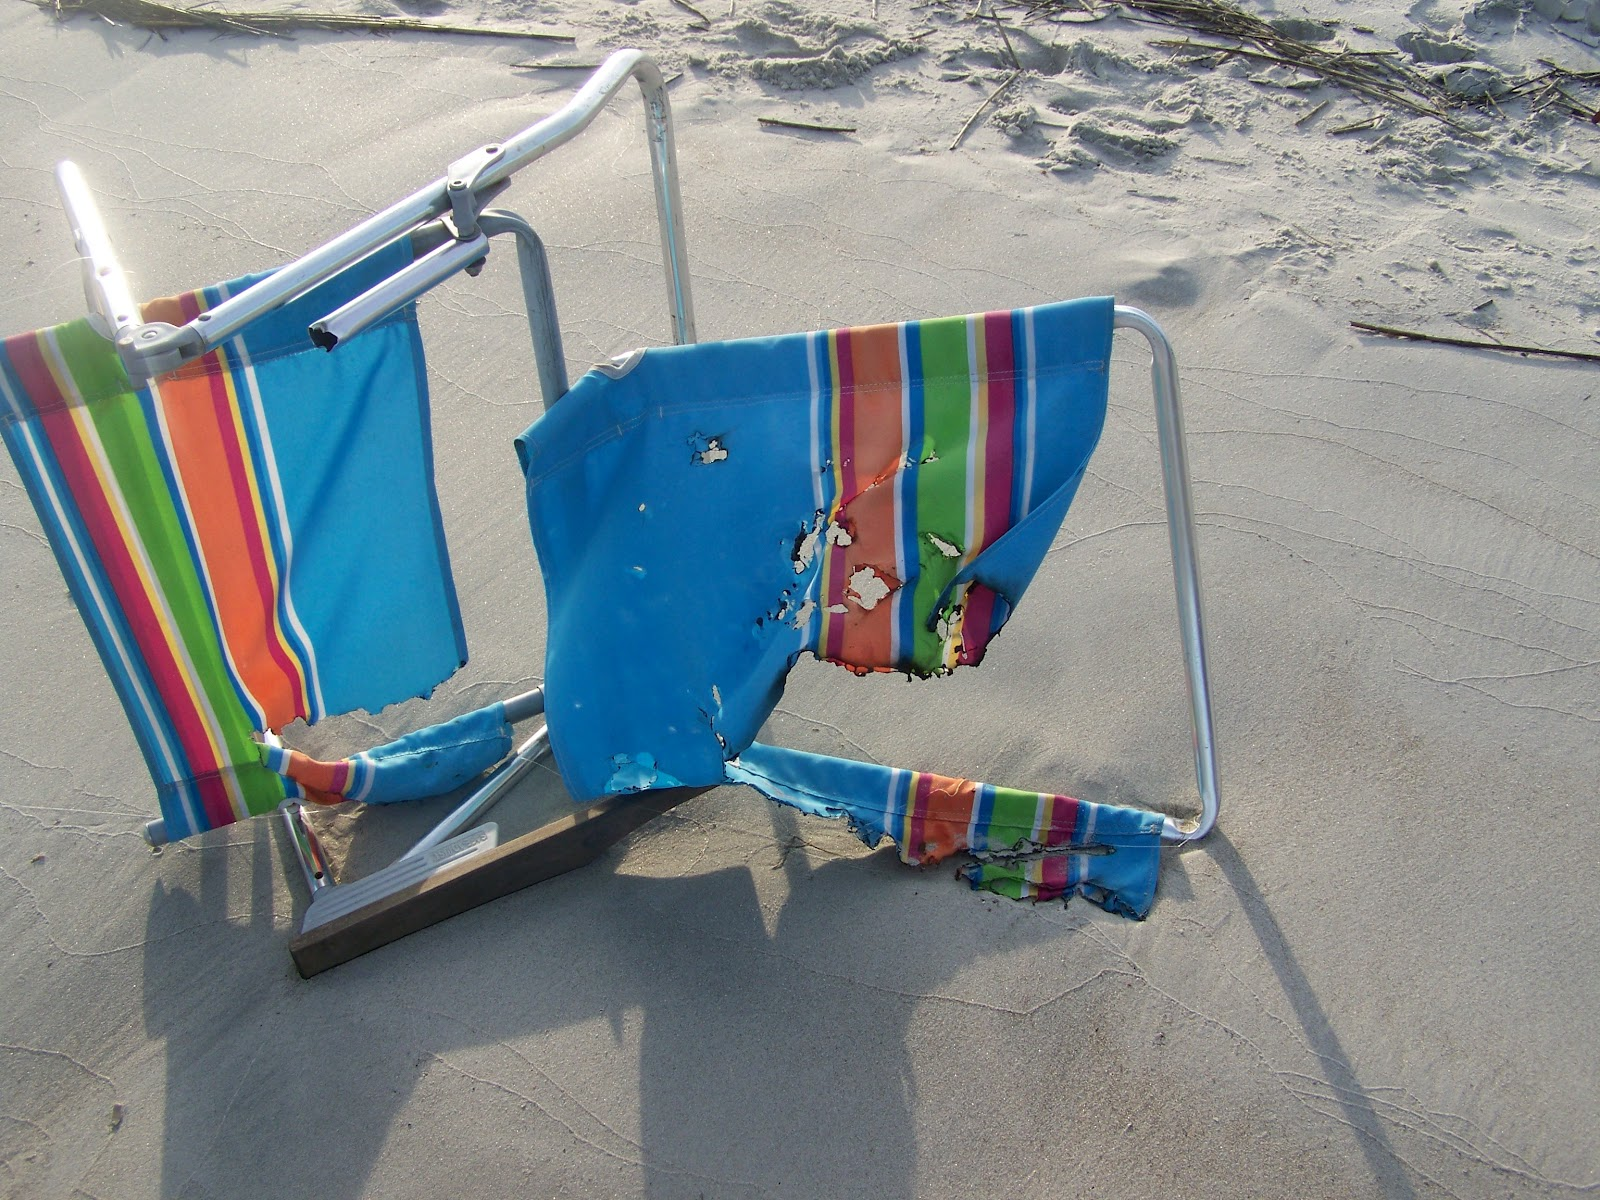 How To Fix Broken Plastic Chair Stainless Steel Chairs Designs Wrightsville Beach Keep It Clean May 2012